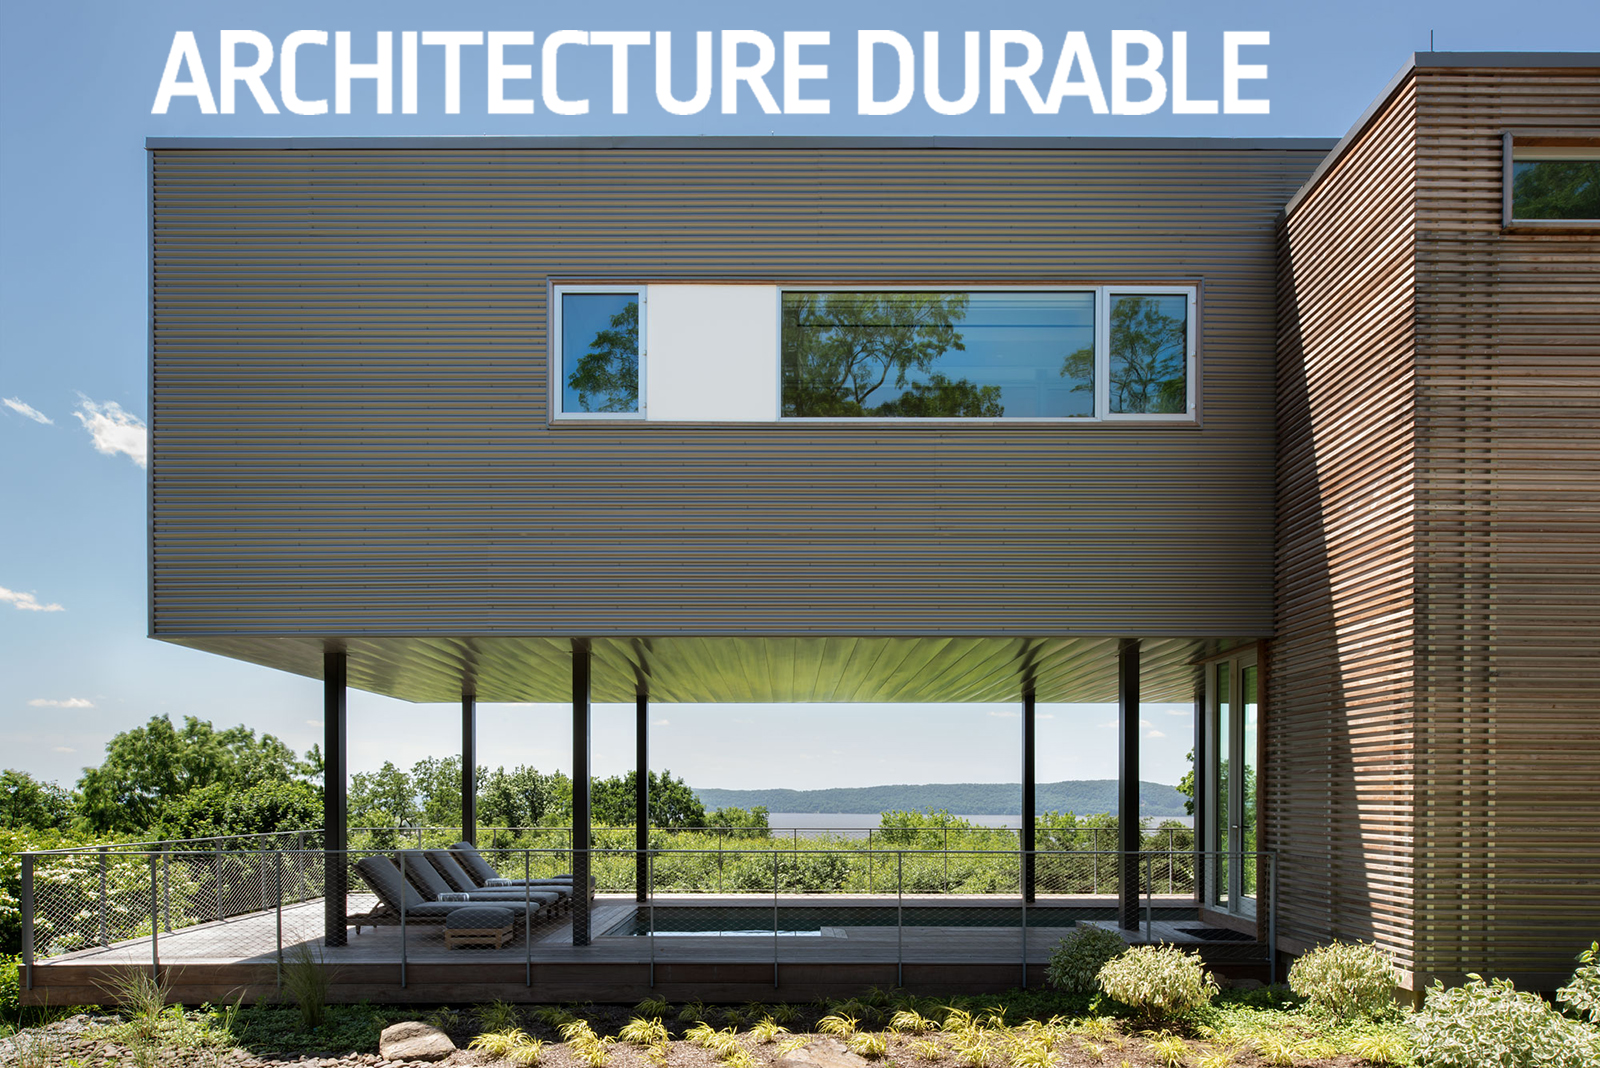 ARCHITECTURE DURABLE  | May 20, 2019